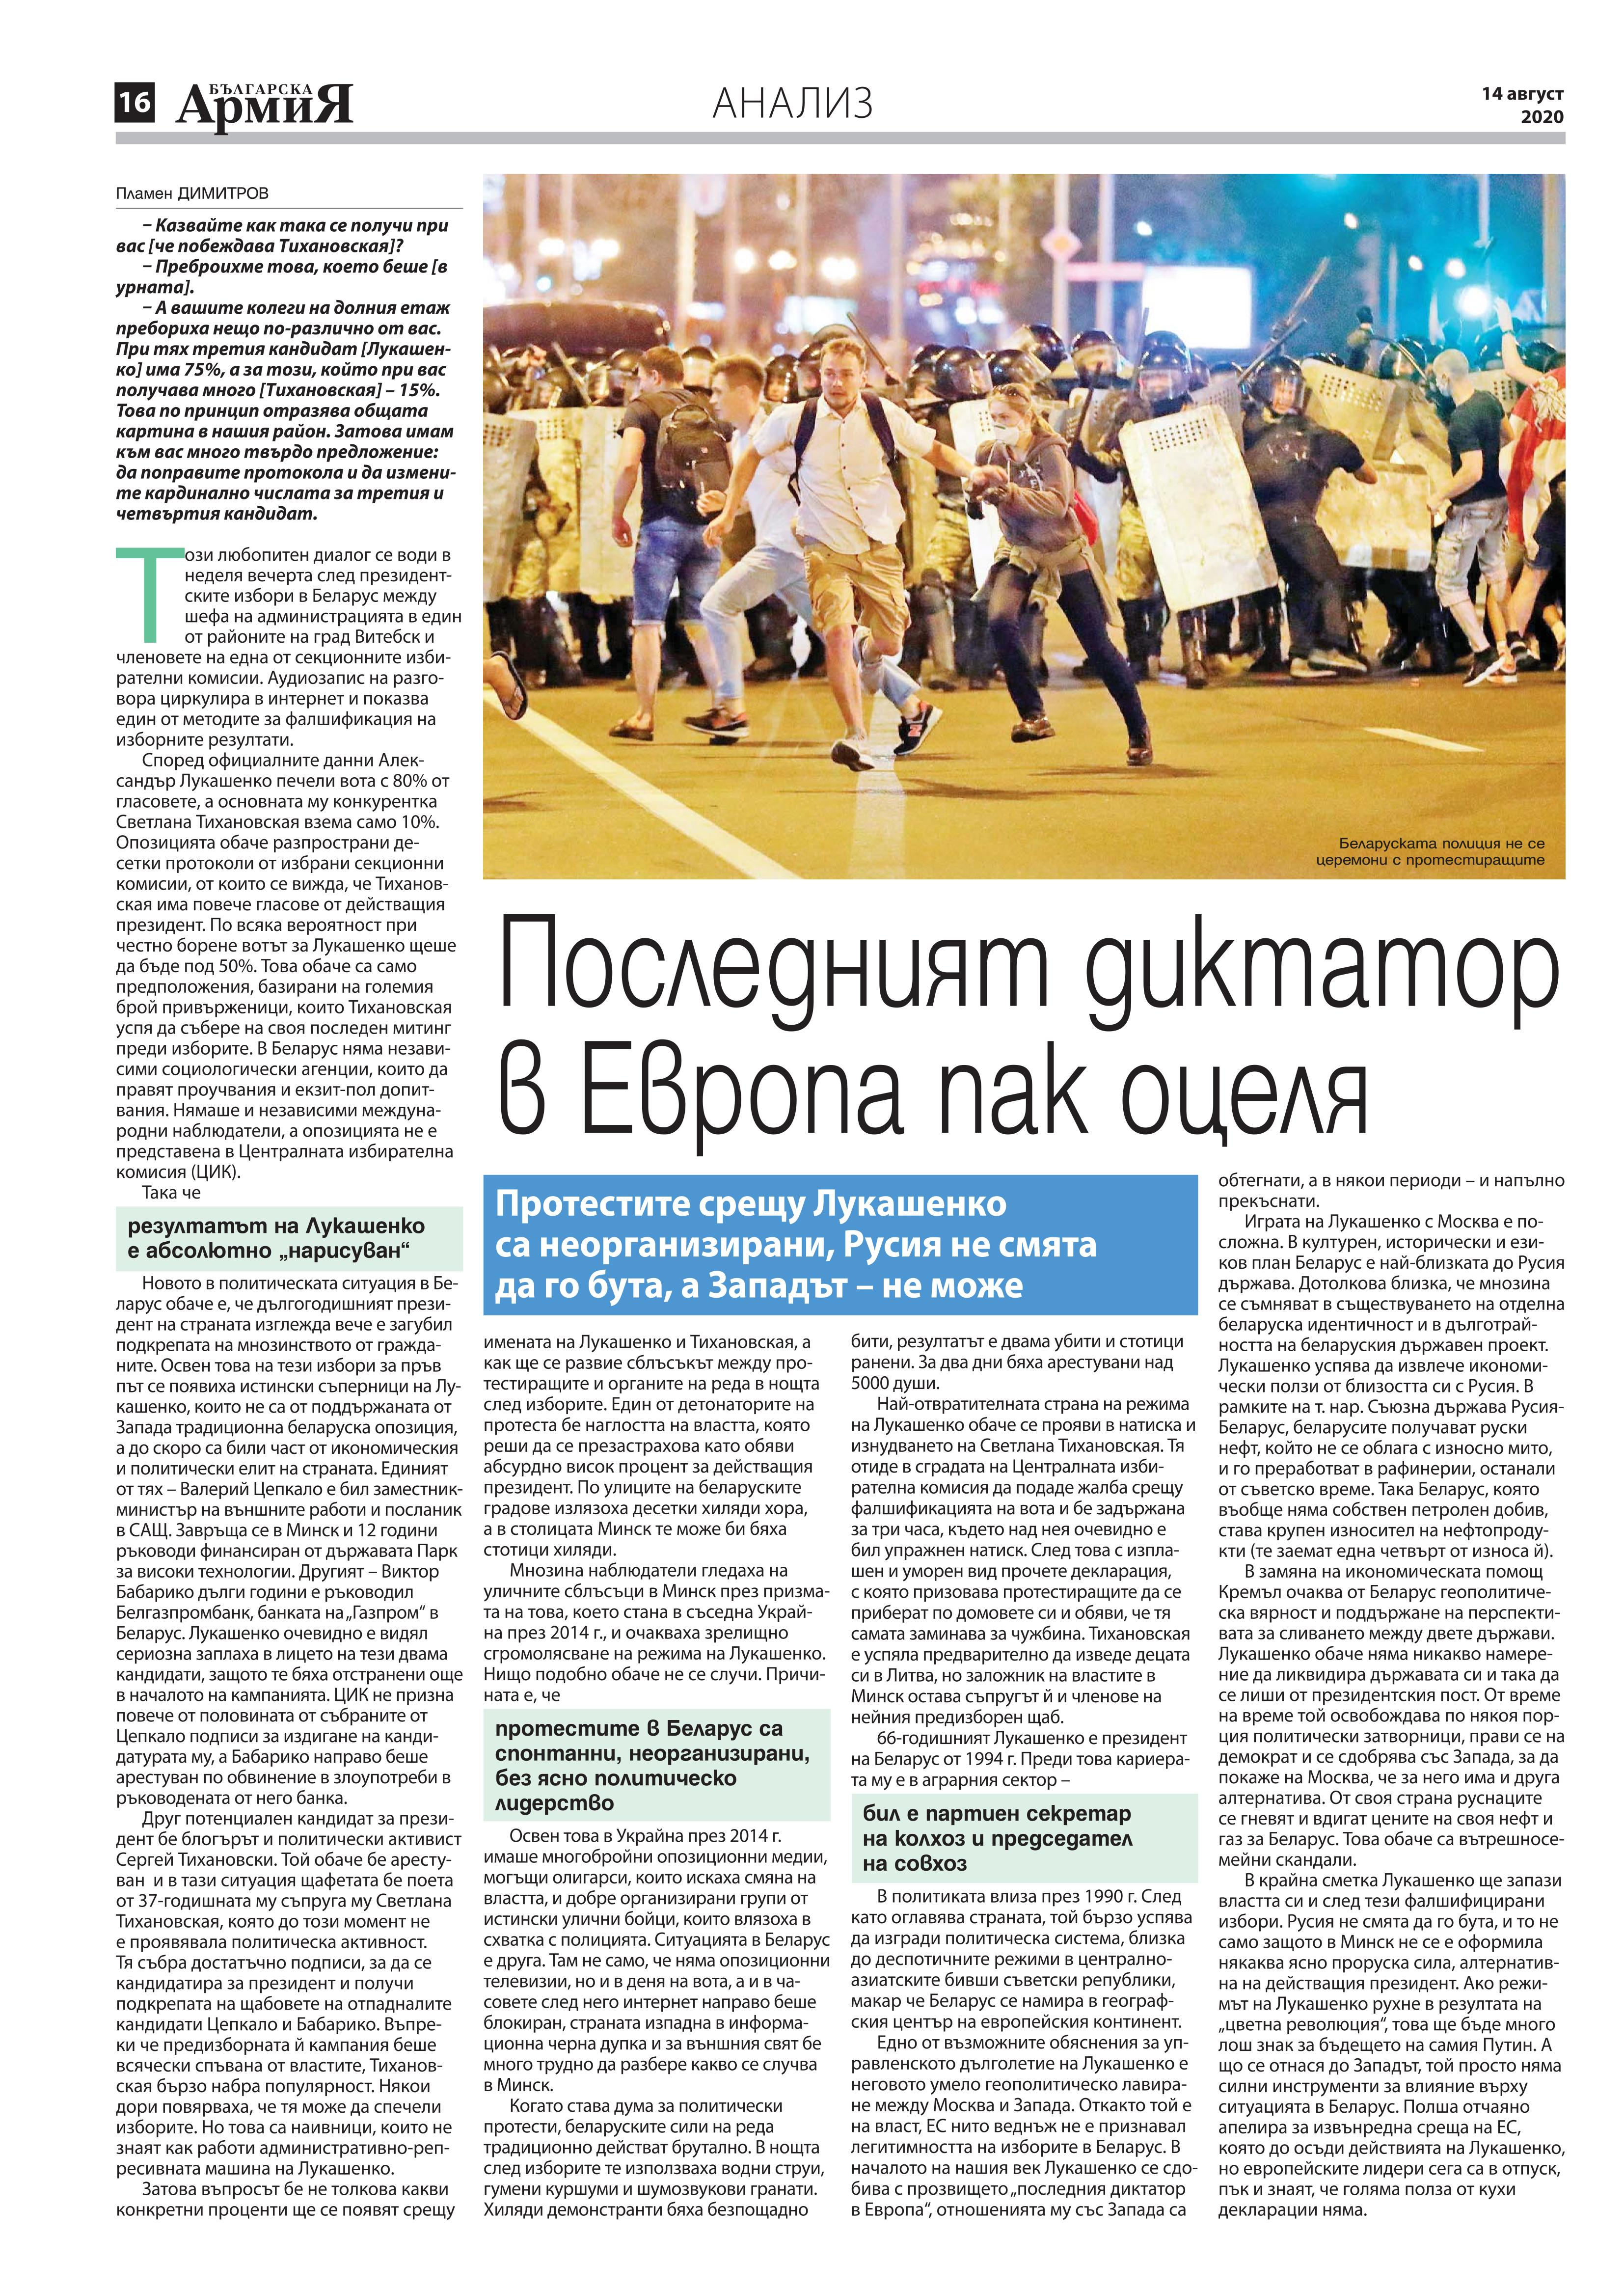 https://armymedia.bg/wp-content/uploads/2015/06/16.page1_-150.jpg